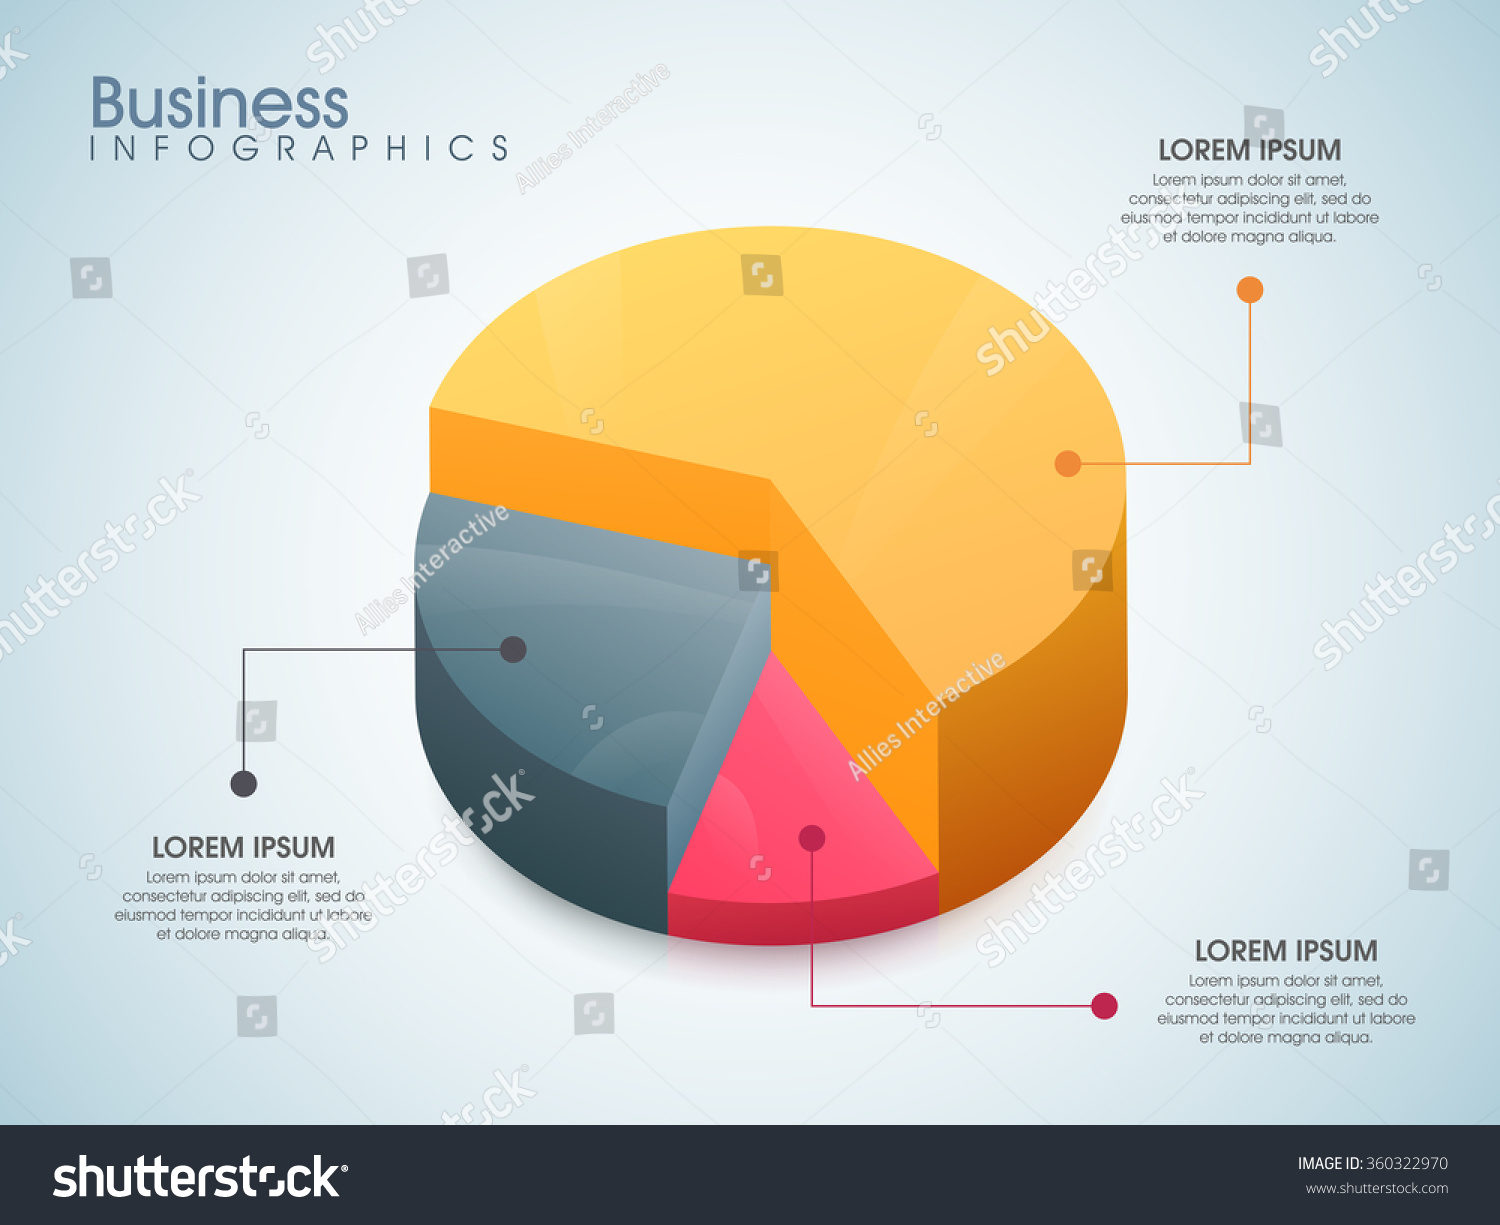 Creative colorful 3d pie chart your stock vector 360322970 creative colorful 3d pie chart for your business reports and financial data presentation geenschuldenfo Image collections